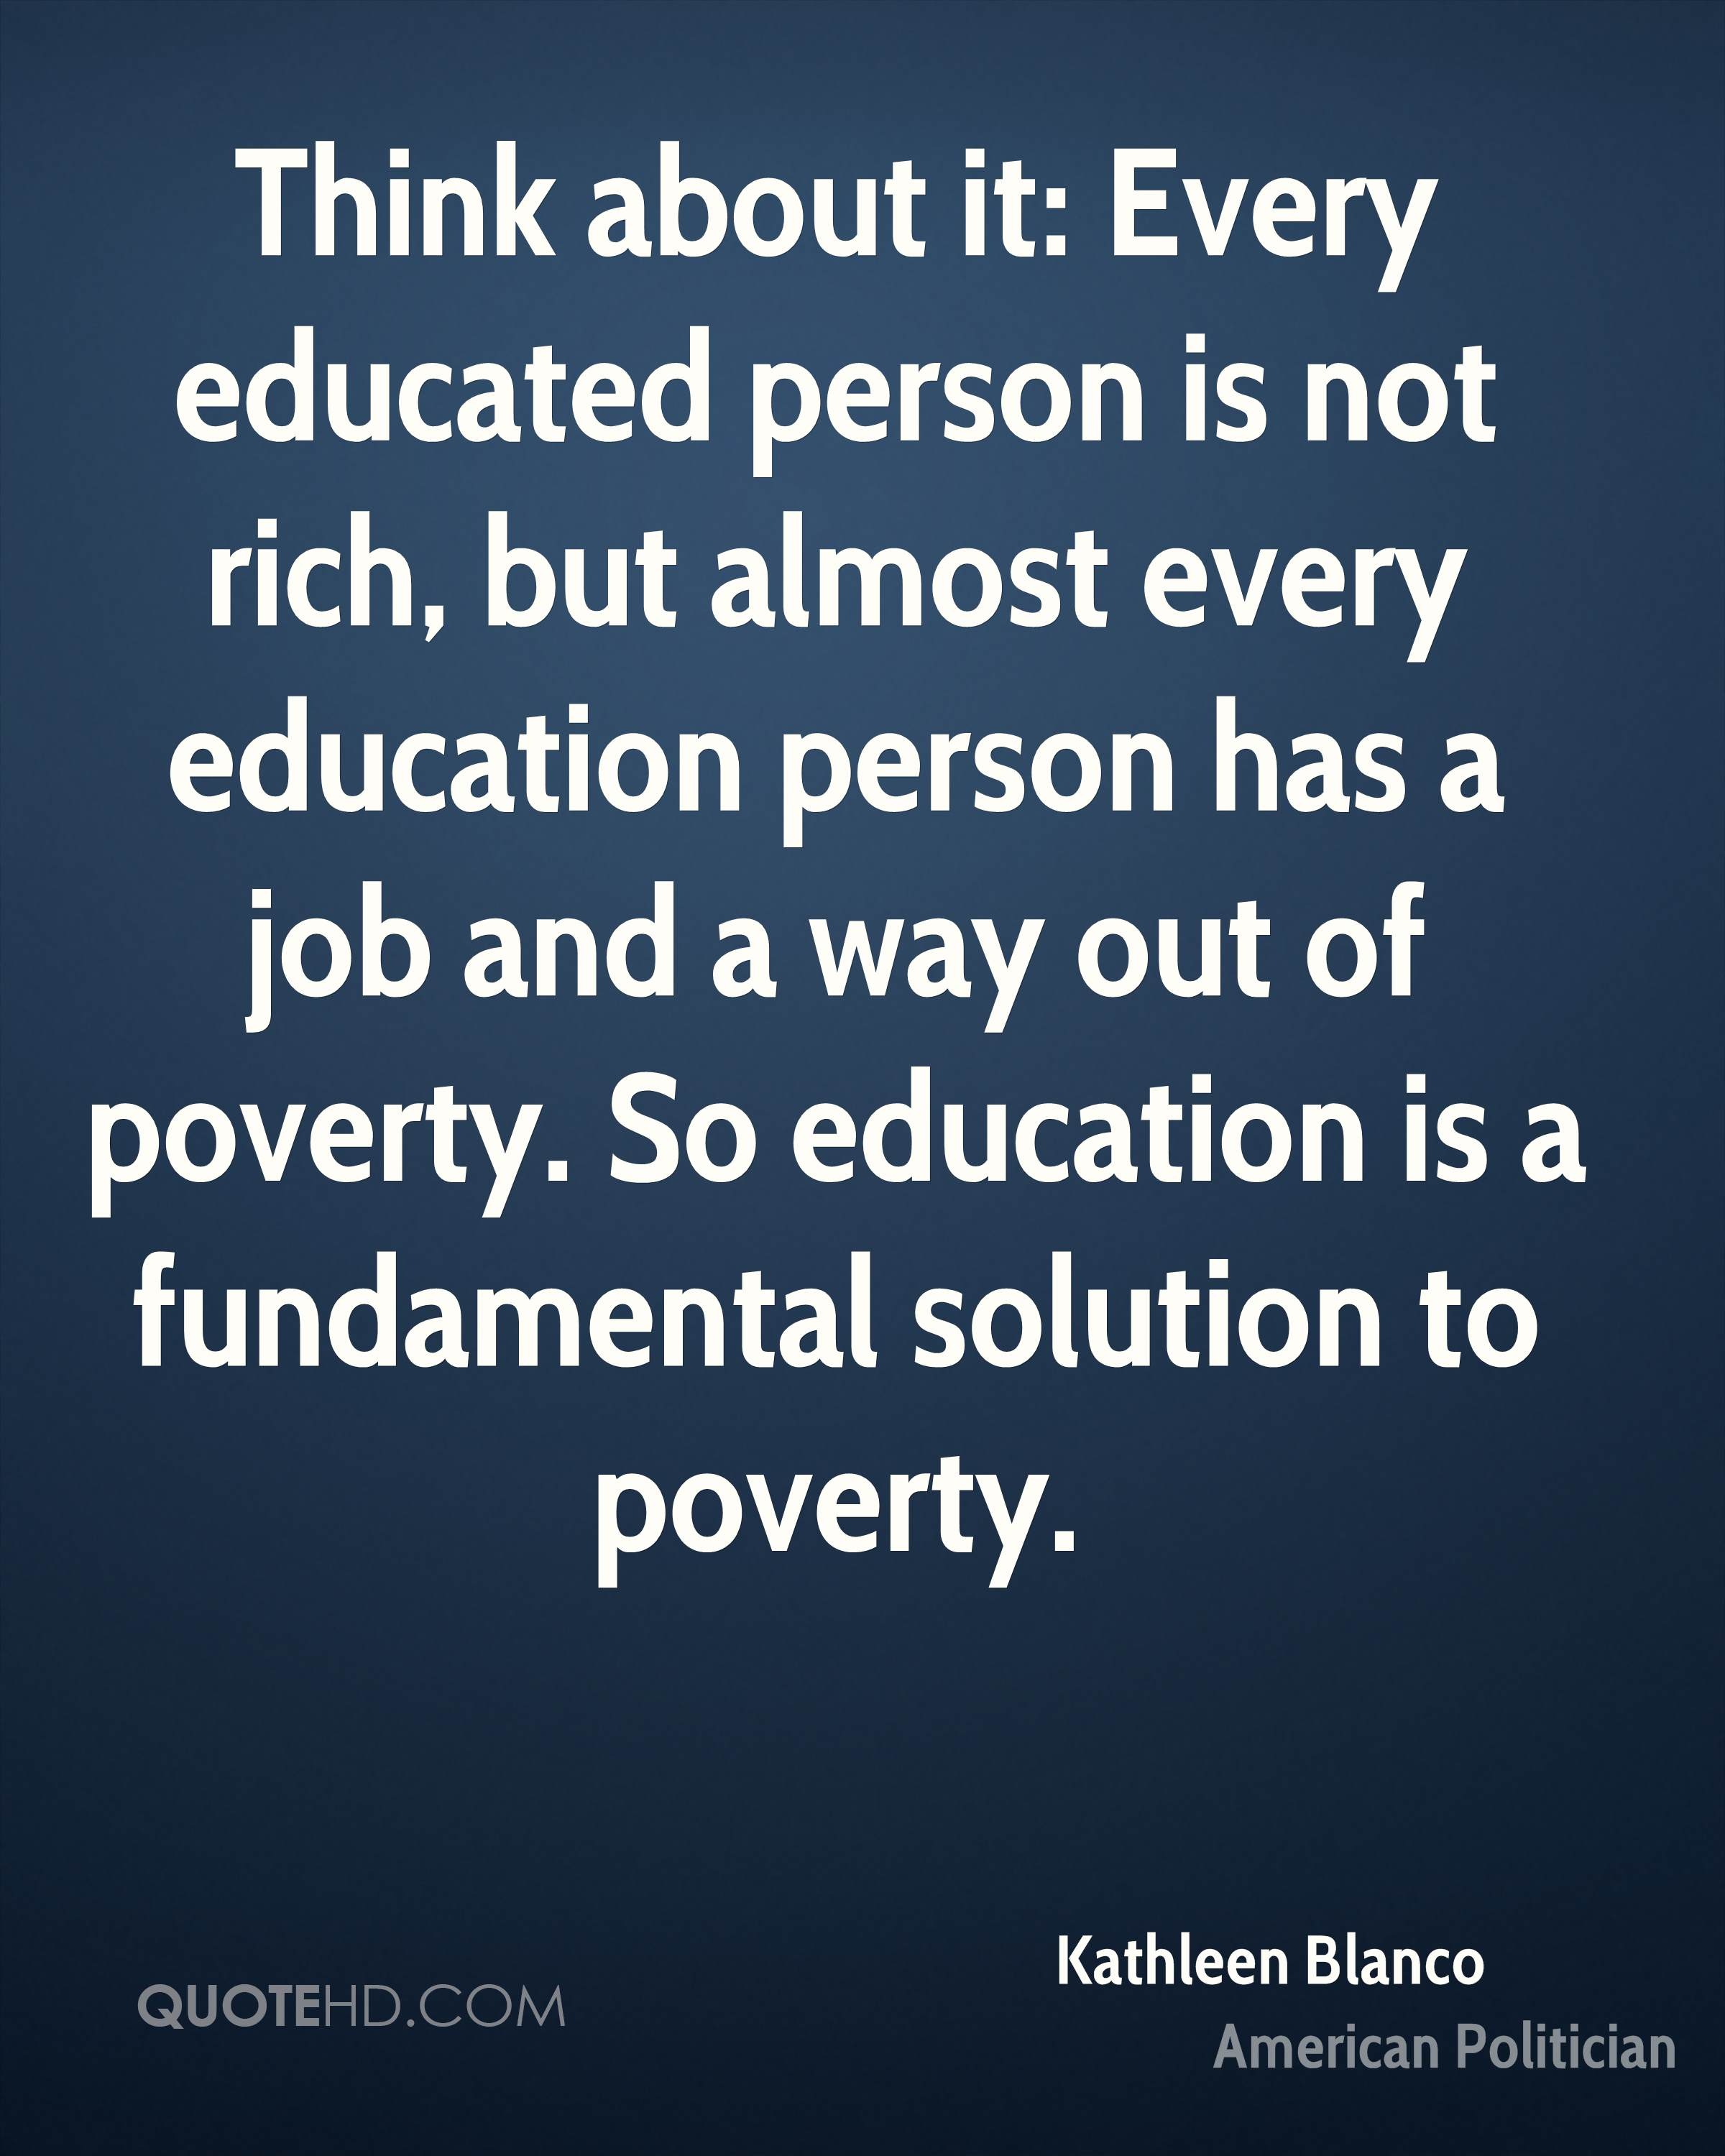 What Are the Characteristics of an Educated Person?